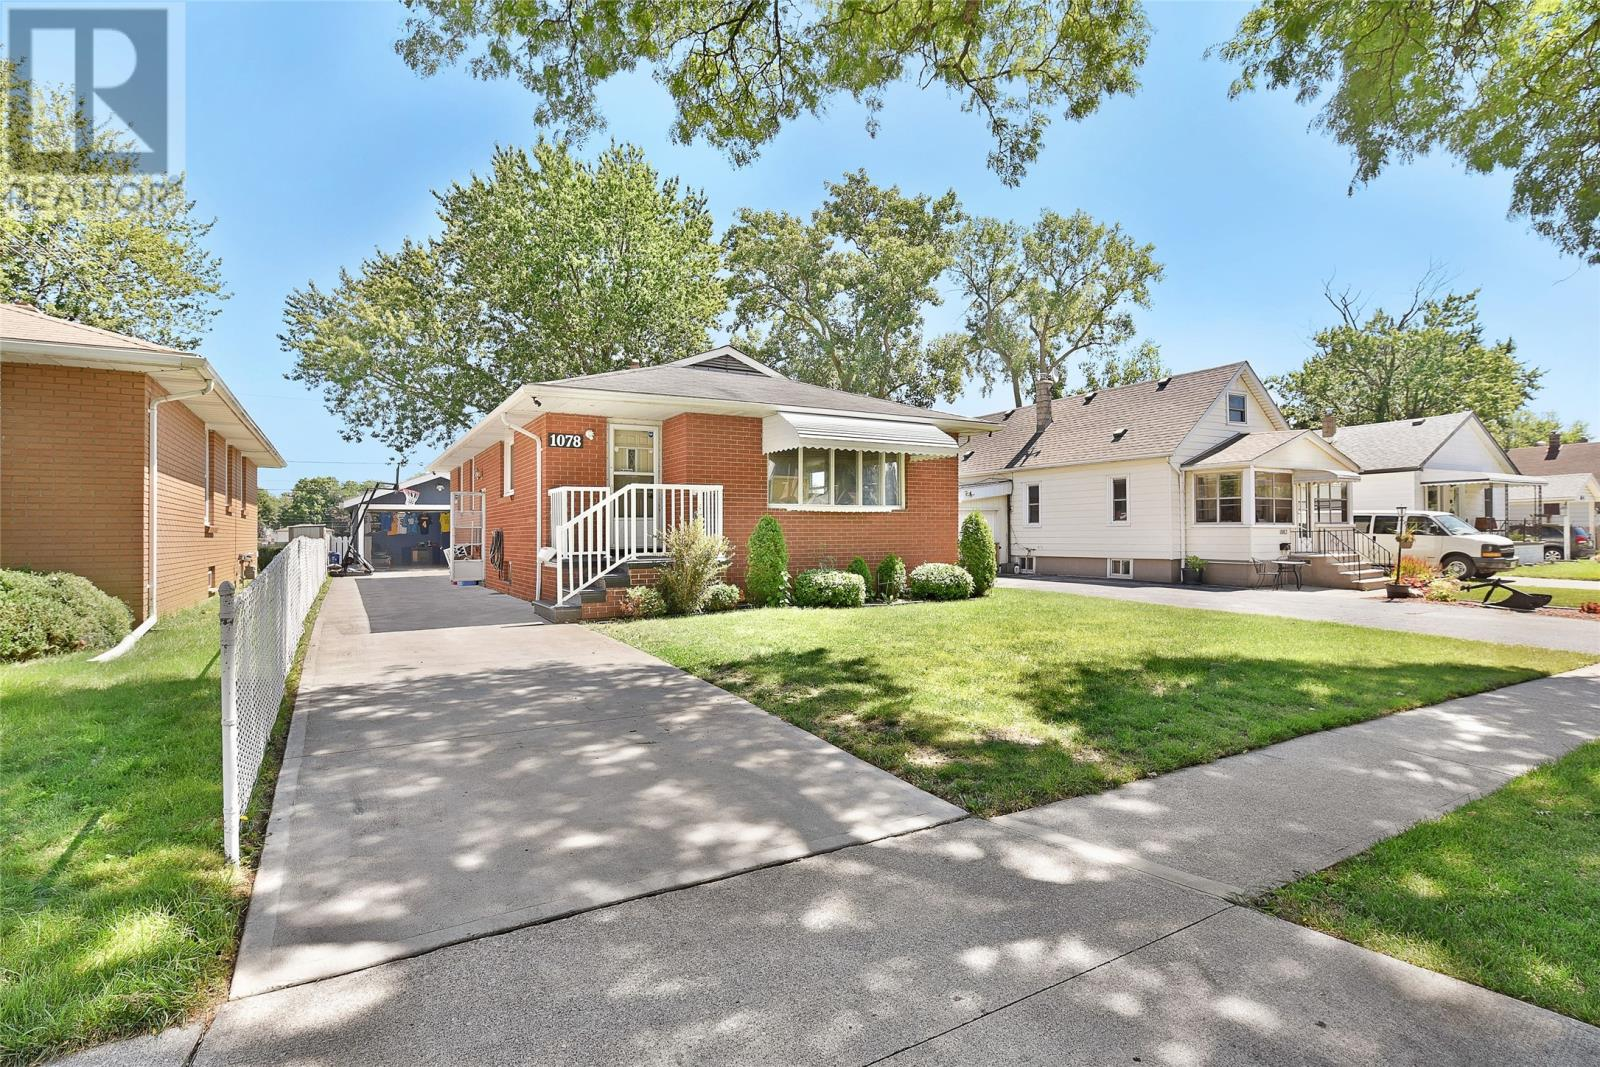 1078 Ford - Windsor Home for Sale